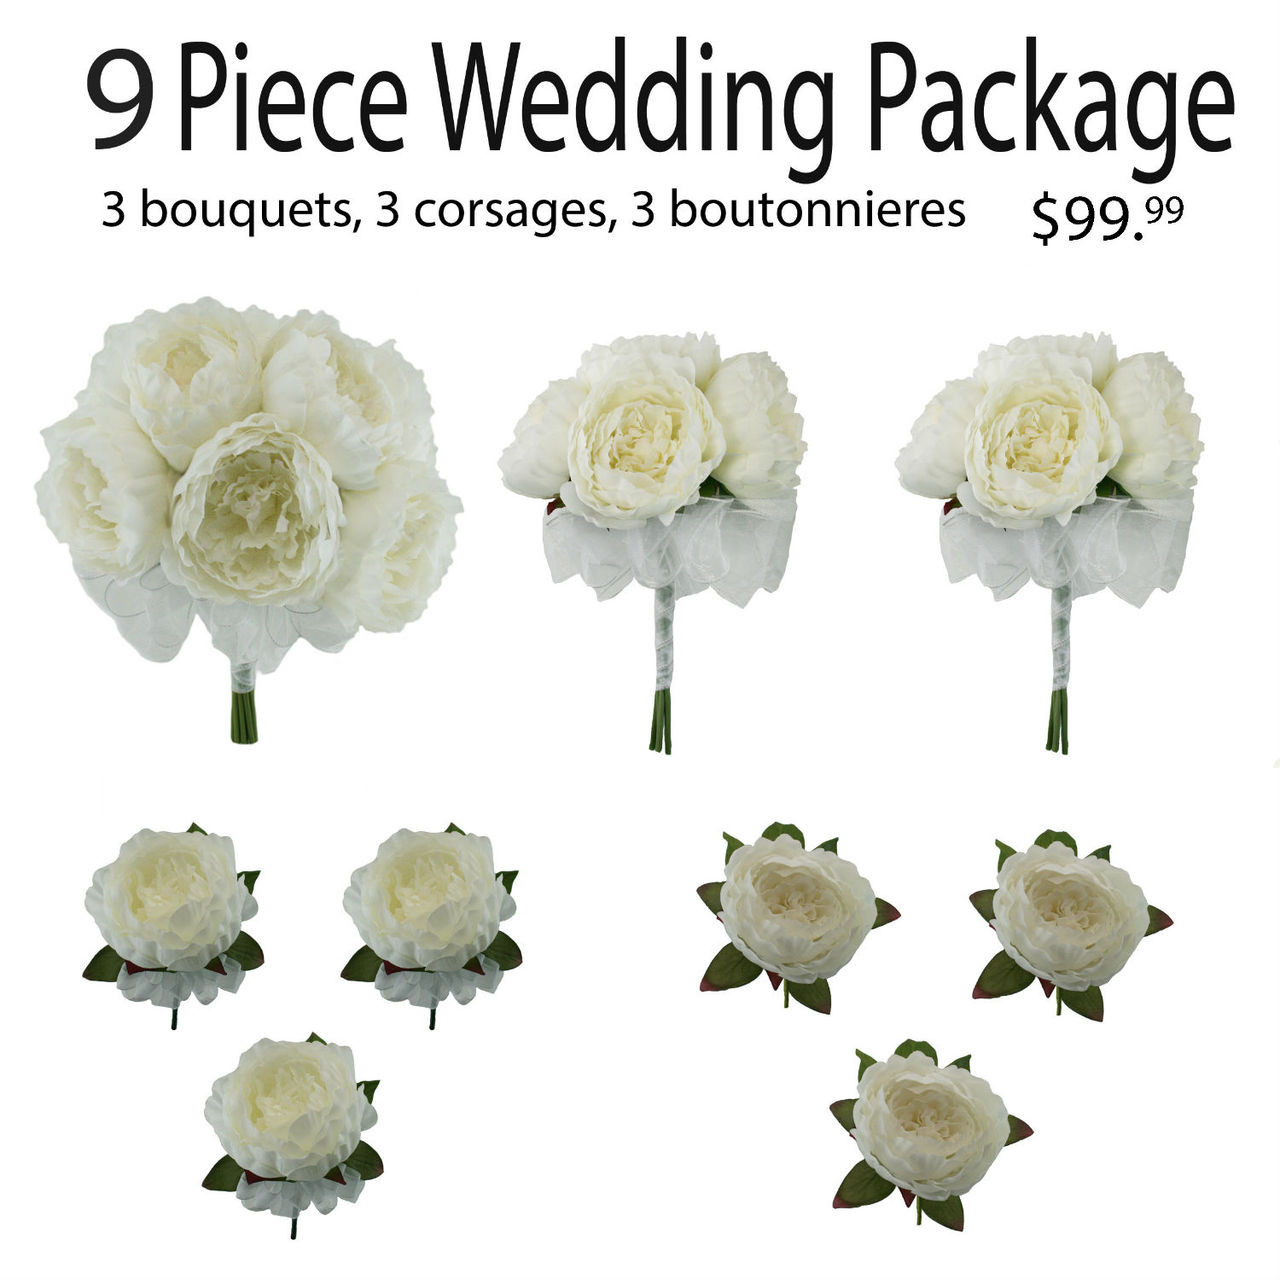 Wedding Flower Packages Cheap: 9 Piece Wedding Package